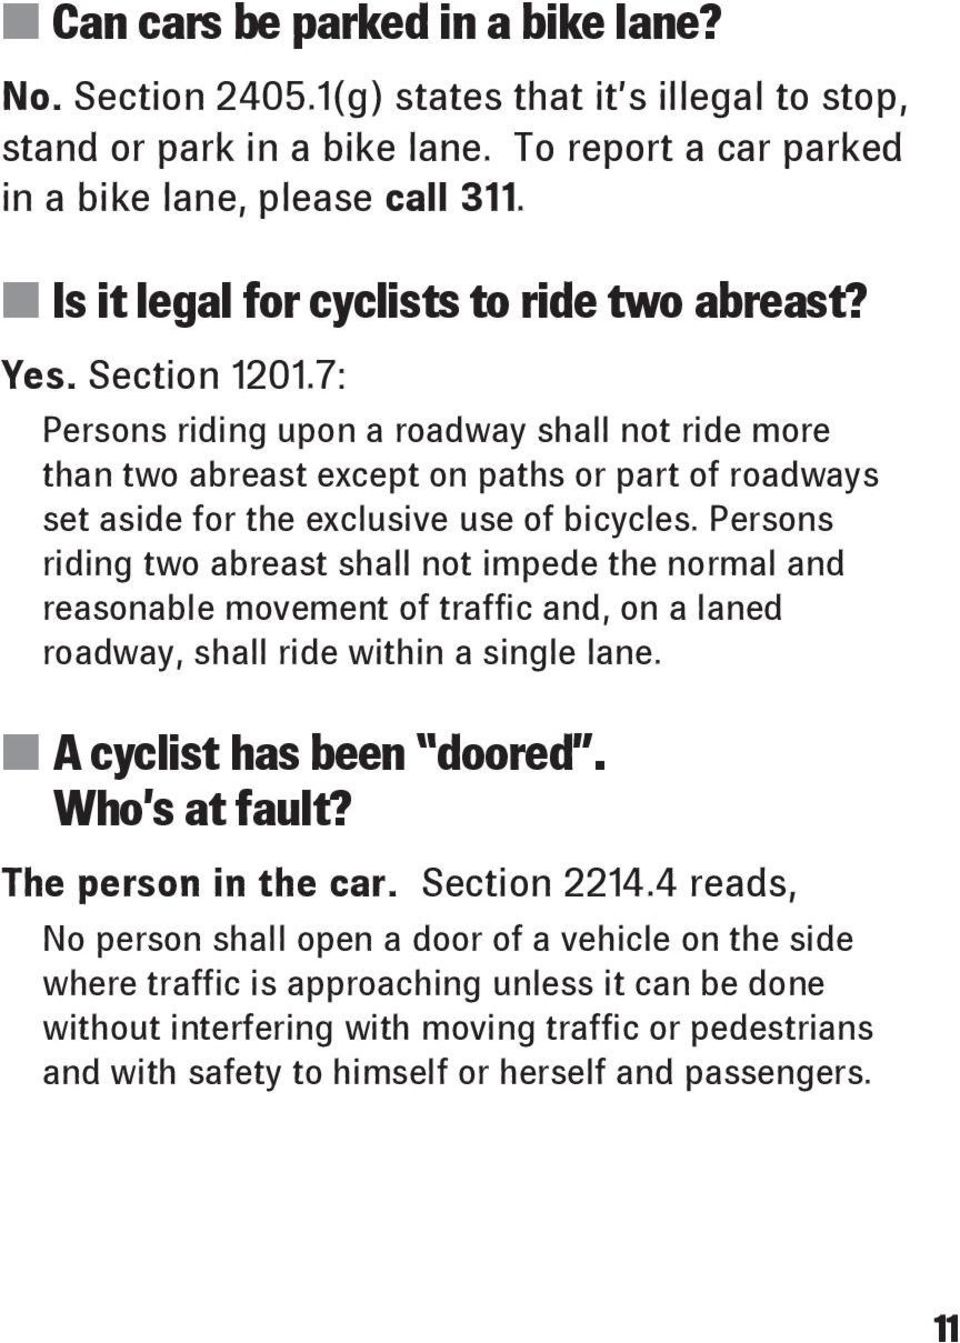 7: Persons riding upon a roadway shall not ride more than two abreast except on paths or part of roadways set aside for the exclusive use of bicycles.